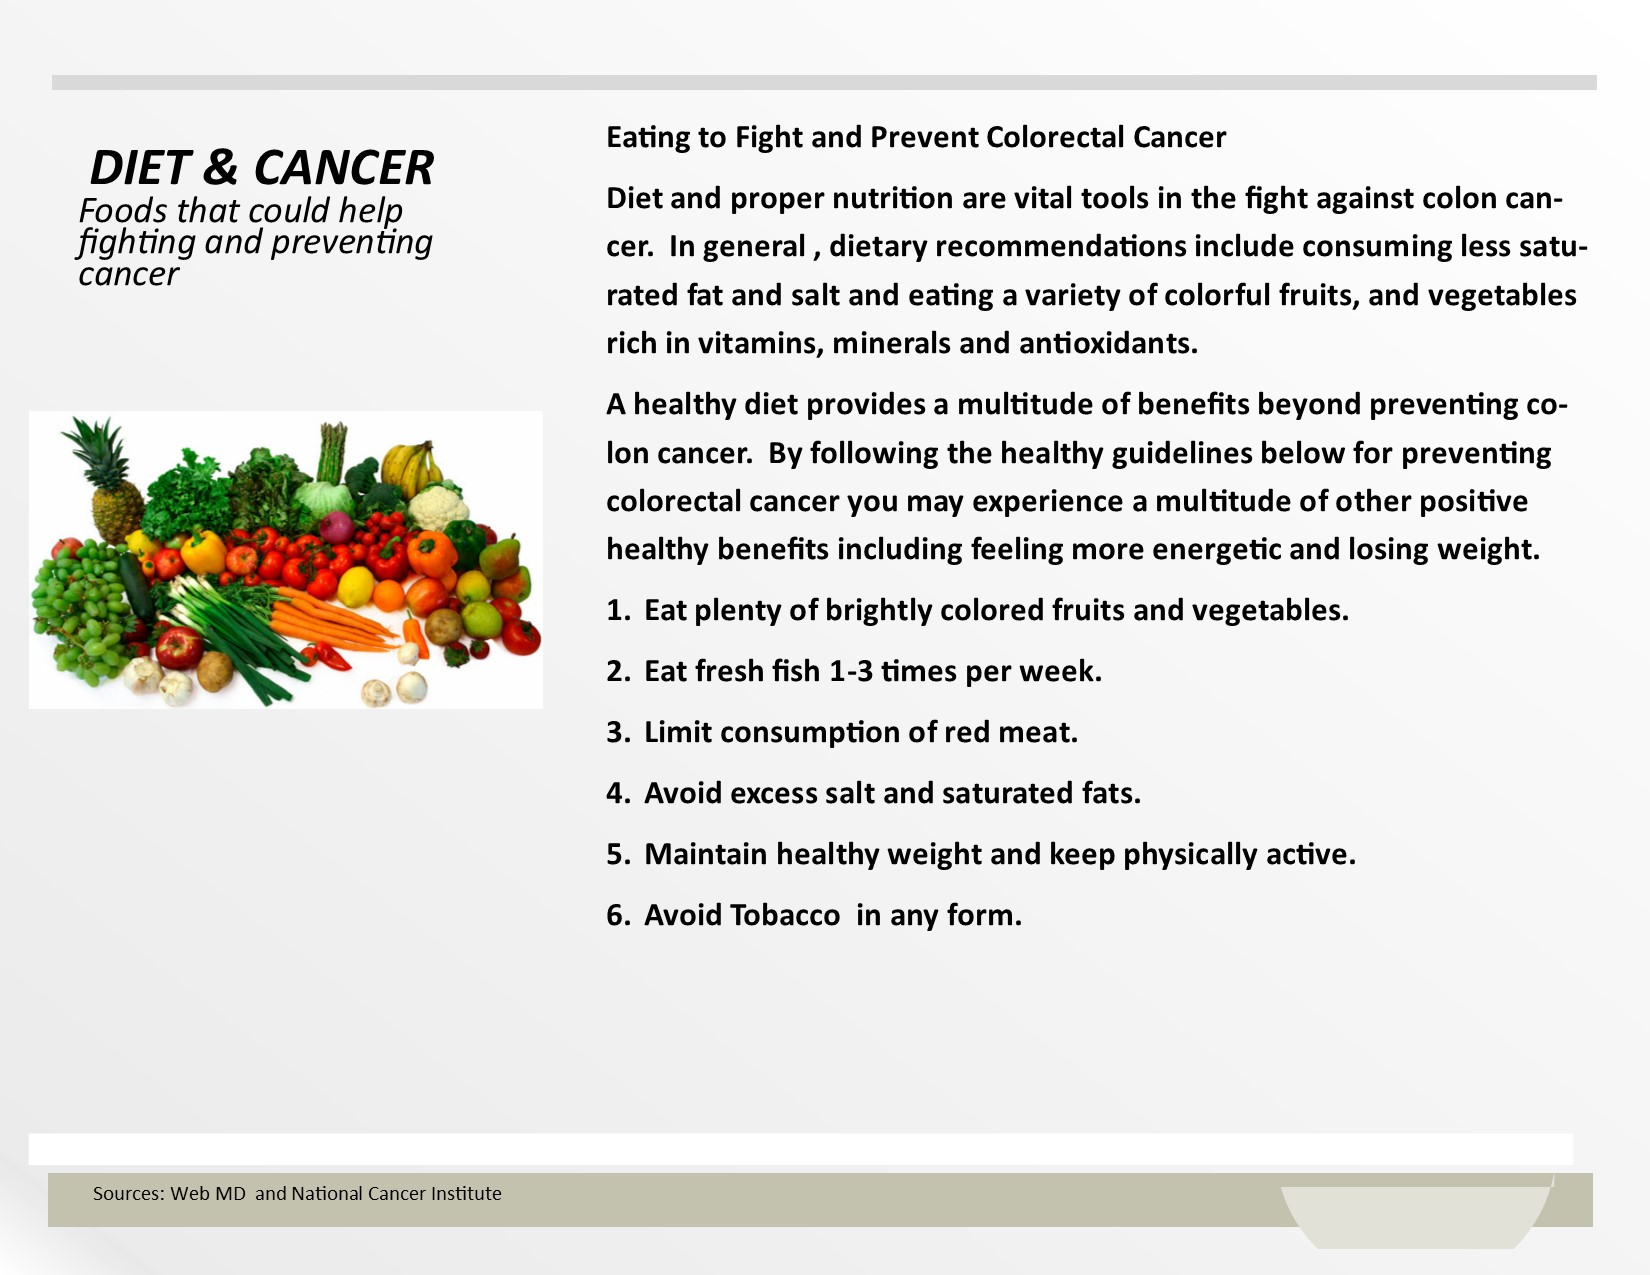 Diet & Cancer 1